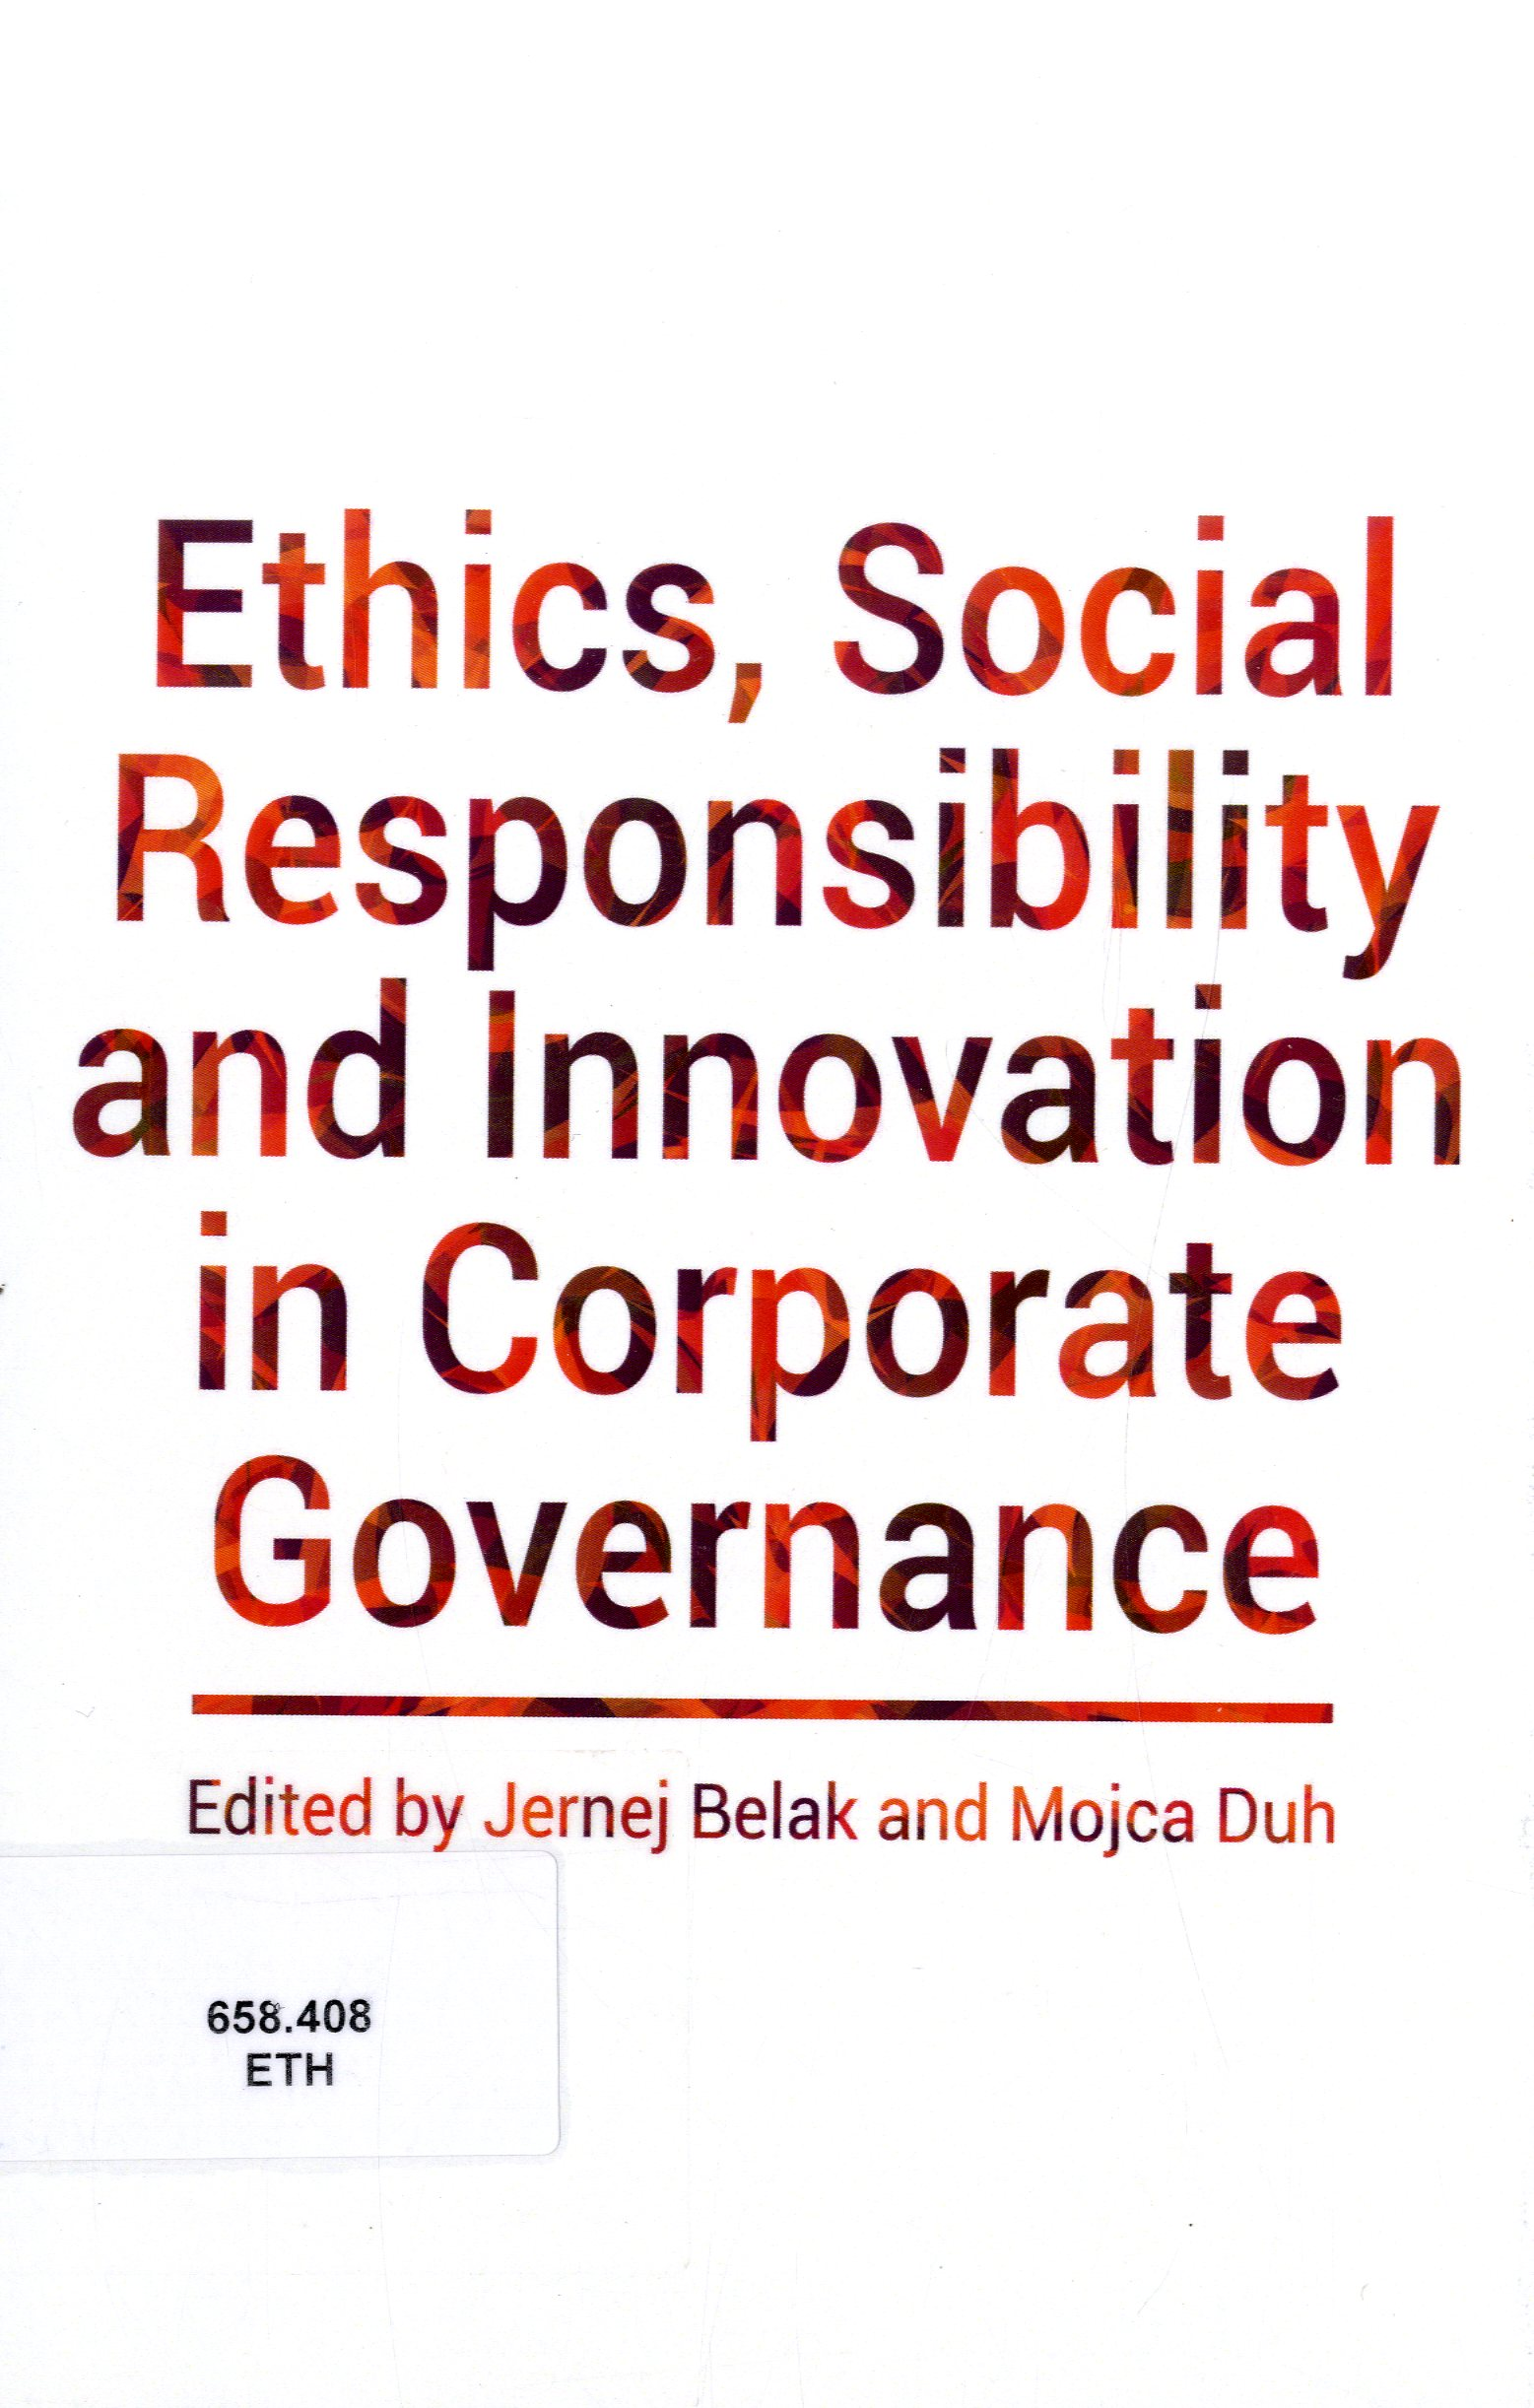 Ethics, Social Responsibility And Innovation In Corporate Governance